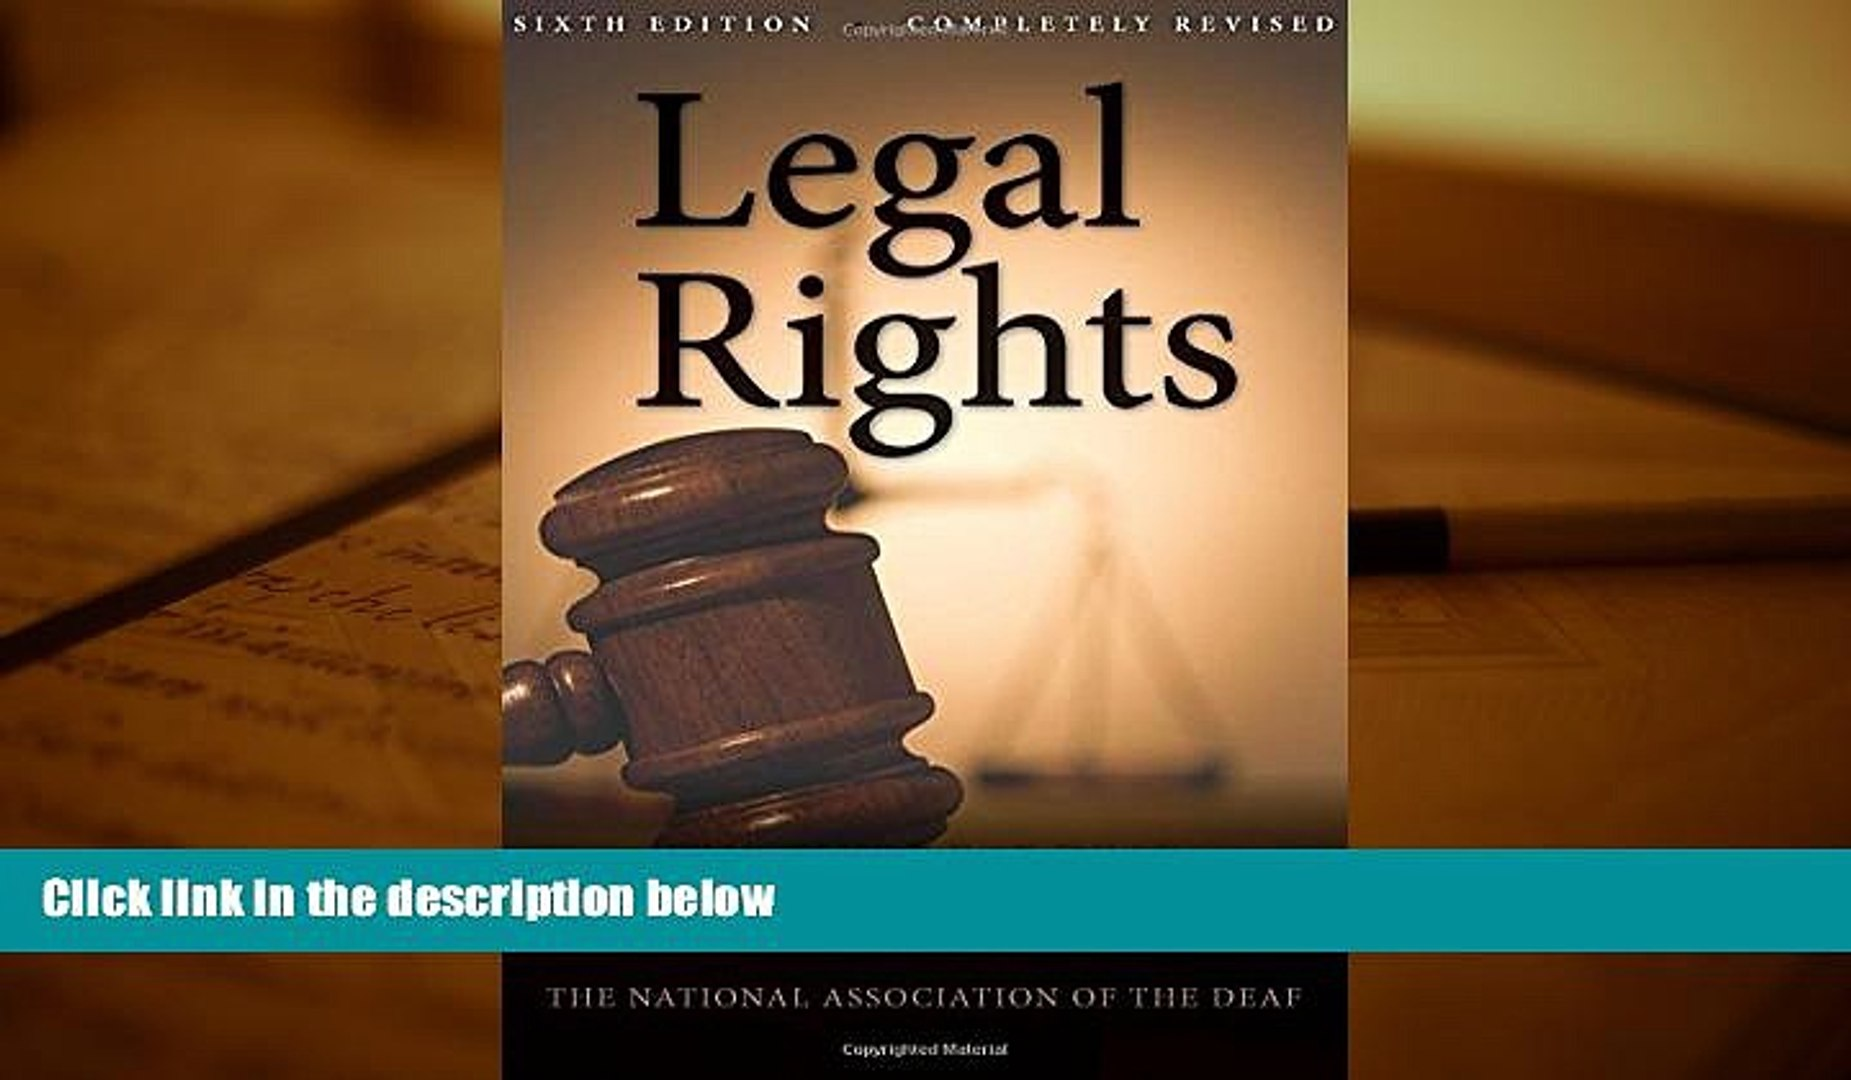 Online National Association of the Deaf Legal Rights, 6th Ed.: The Guide for Deaf and Hard of